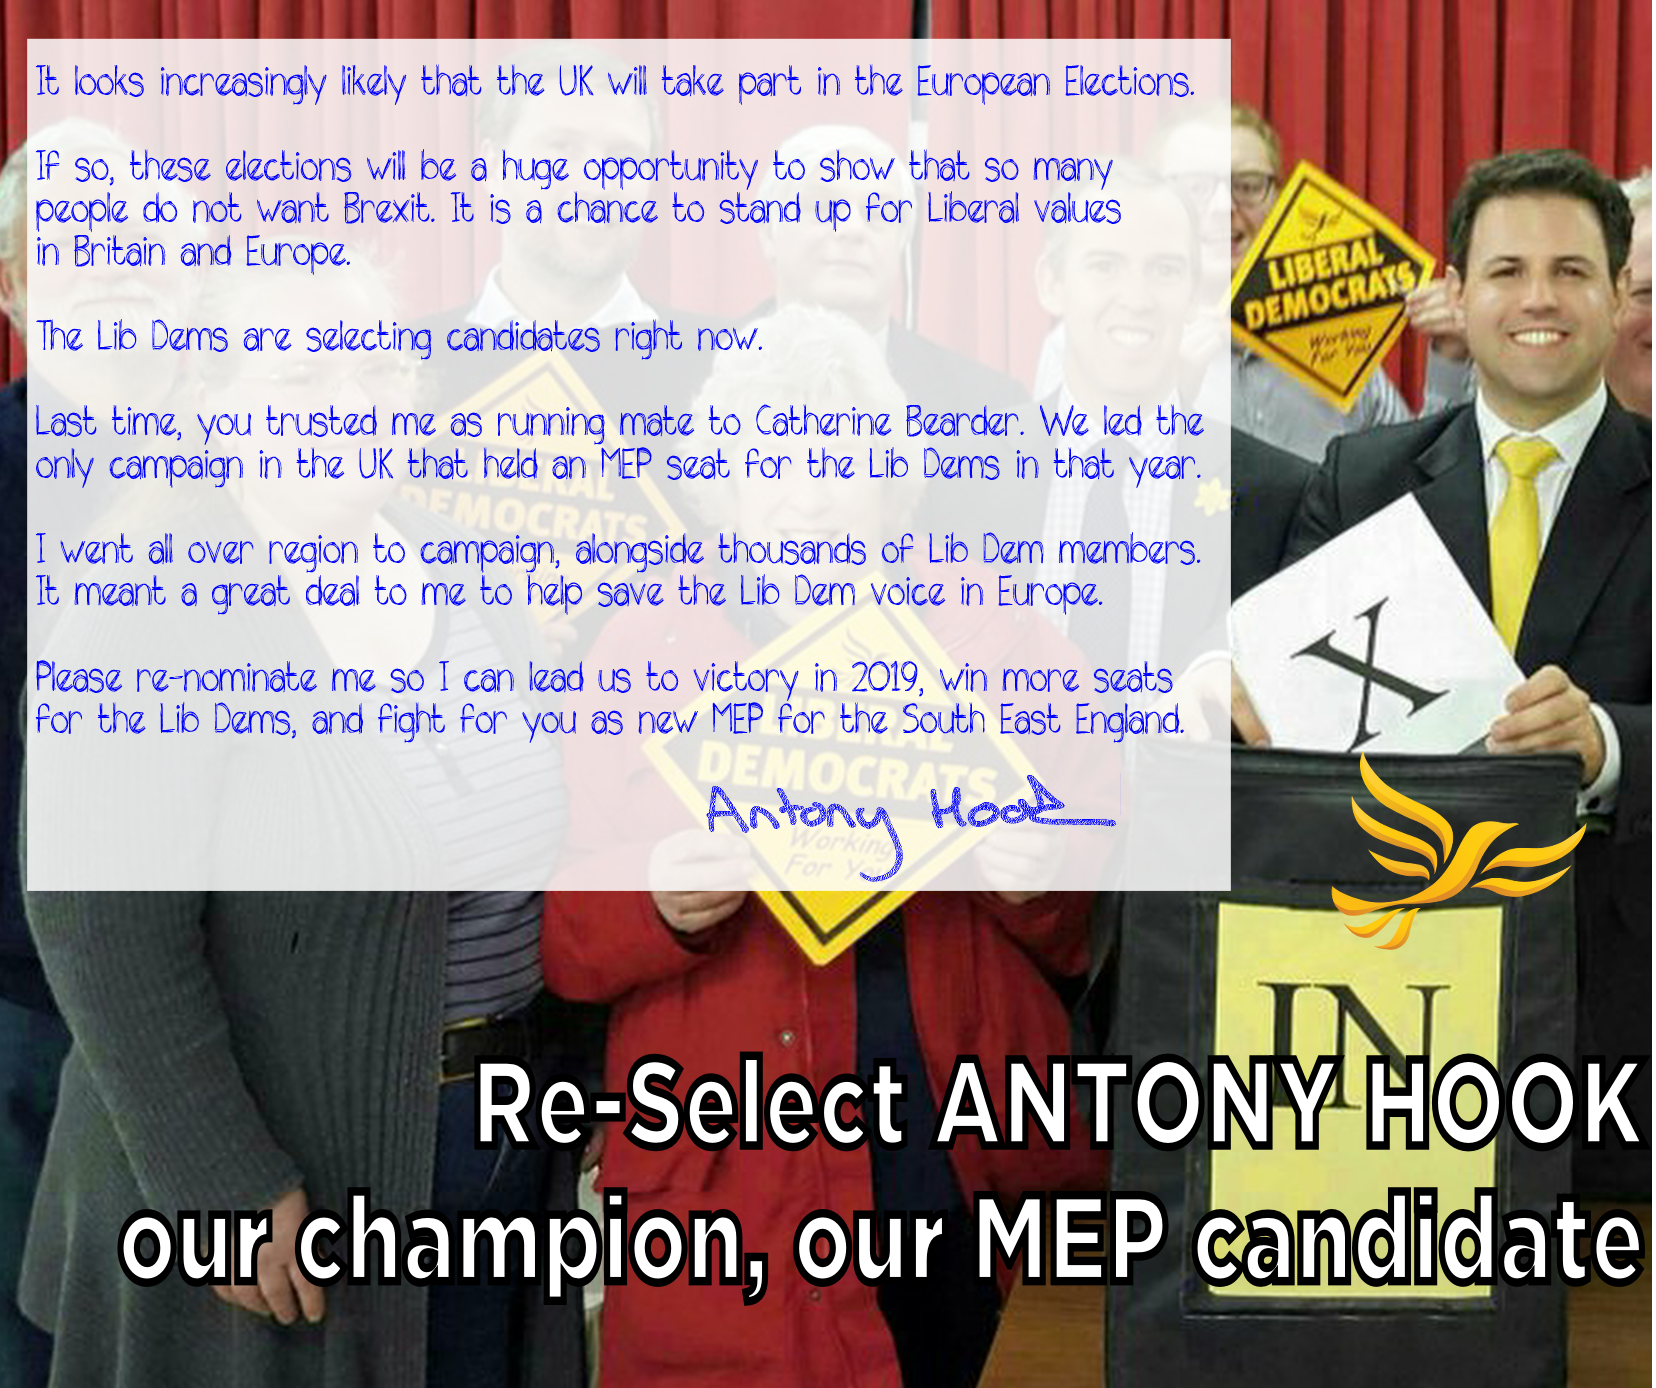 AH_with_ballot_box_for_euro_selection.png